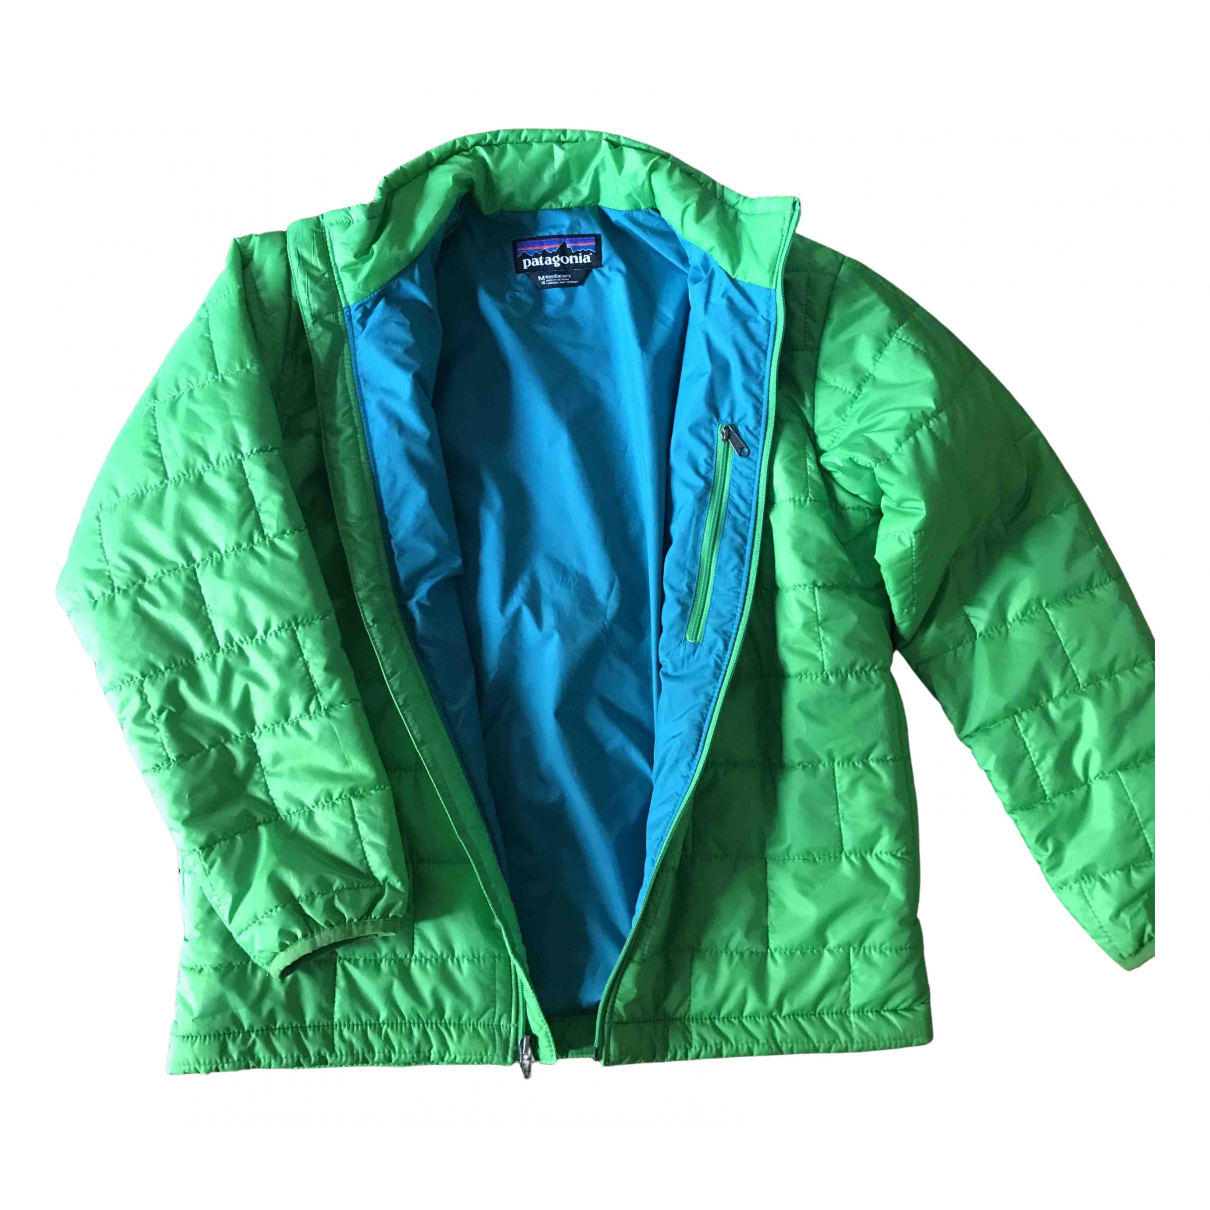 Patagonia N Green jacket & coat for Kids 10 years - until 56 inches UK